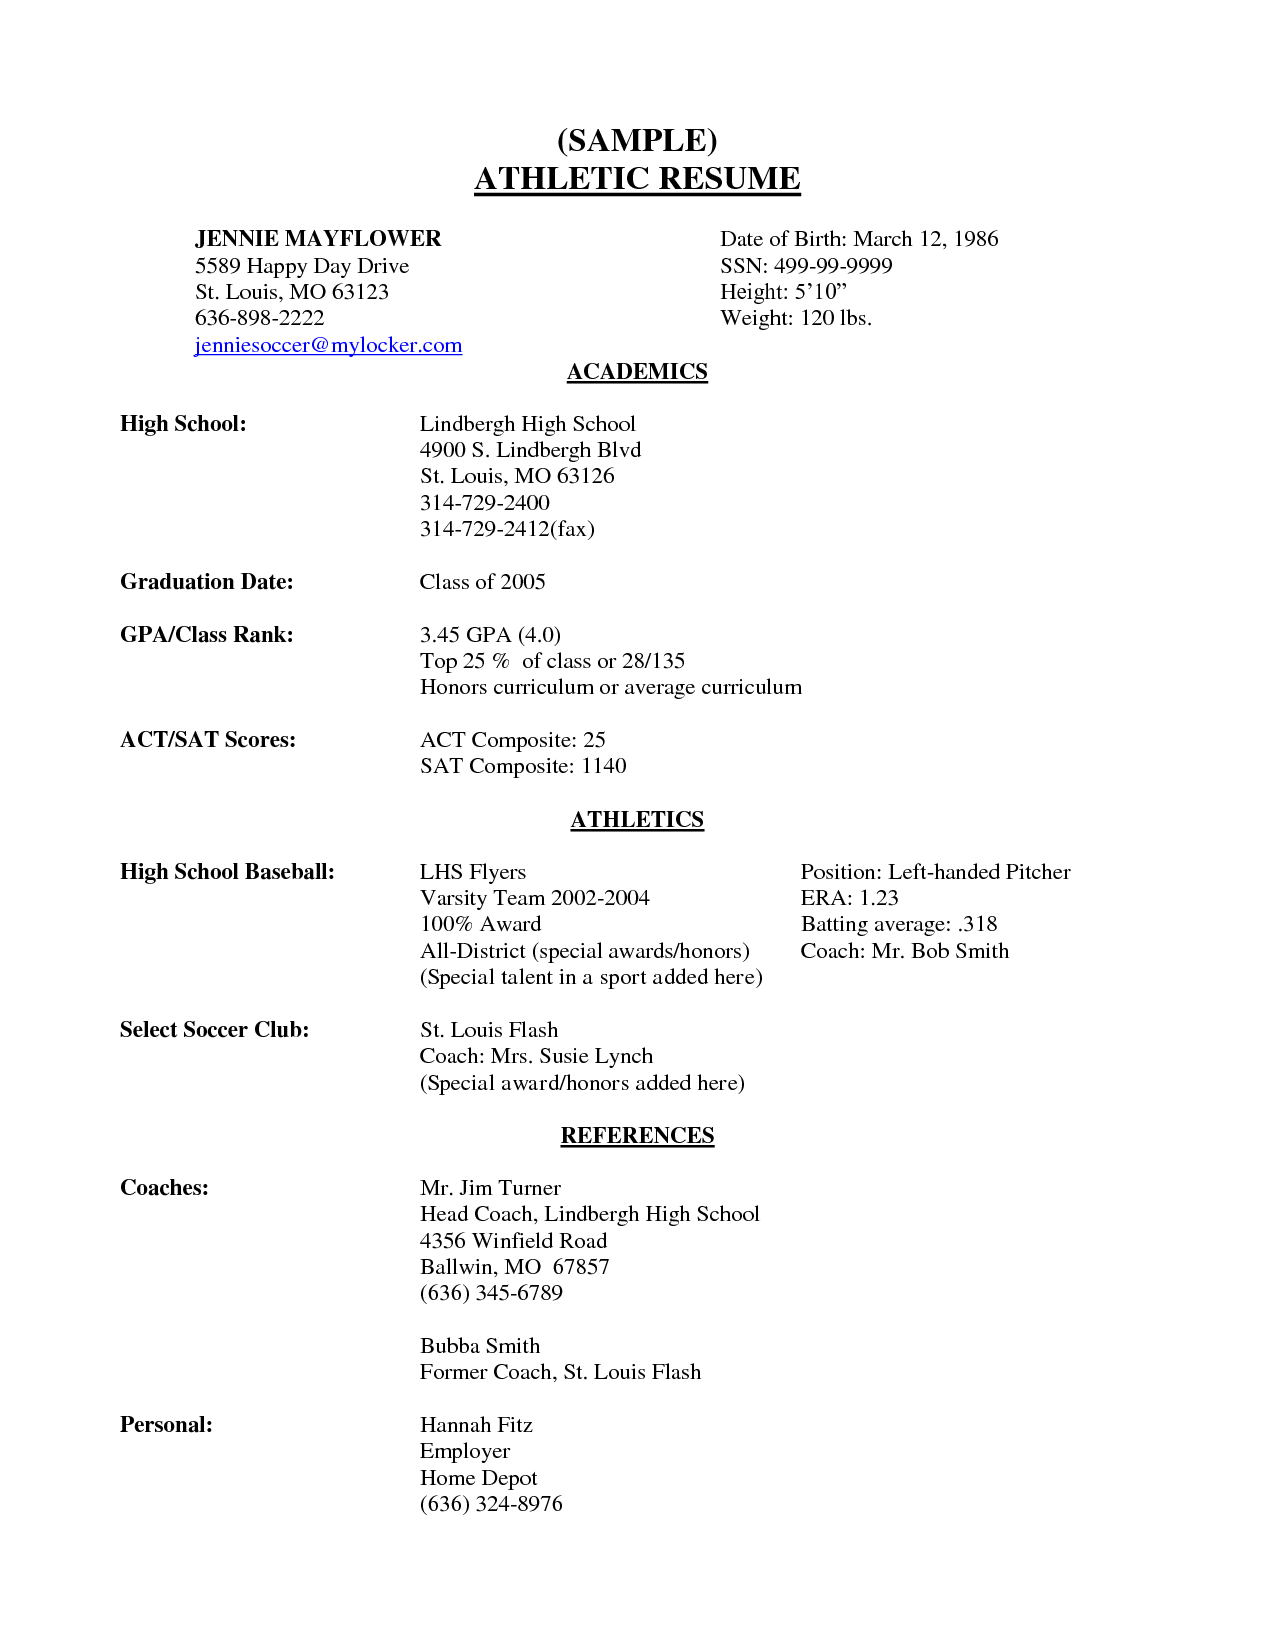 High School Graduate Resume Template Sample Resume For High School